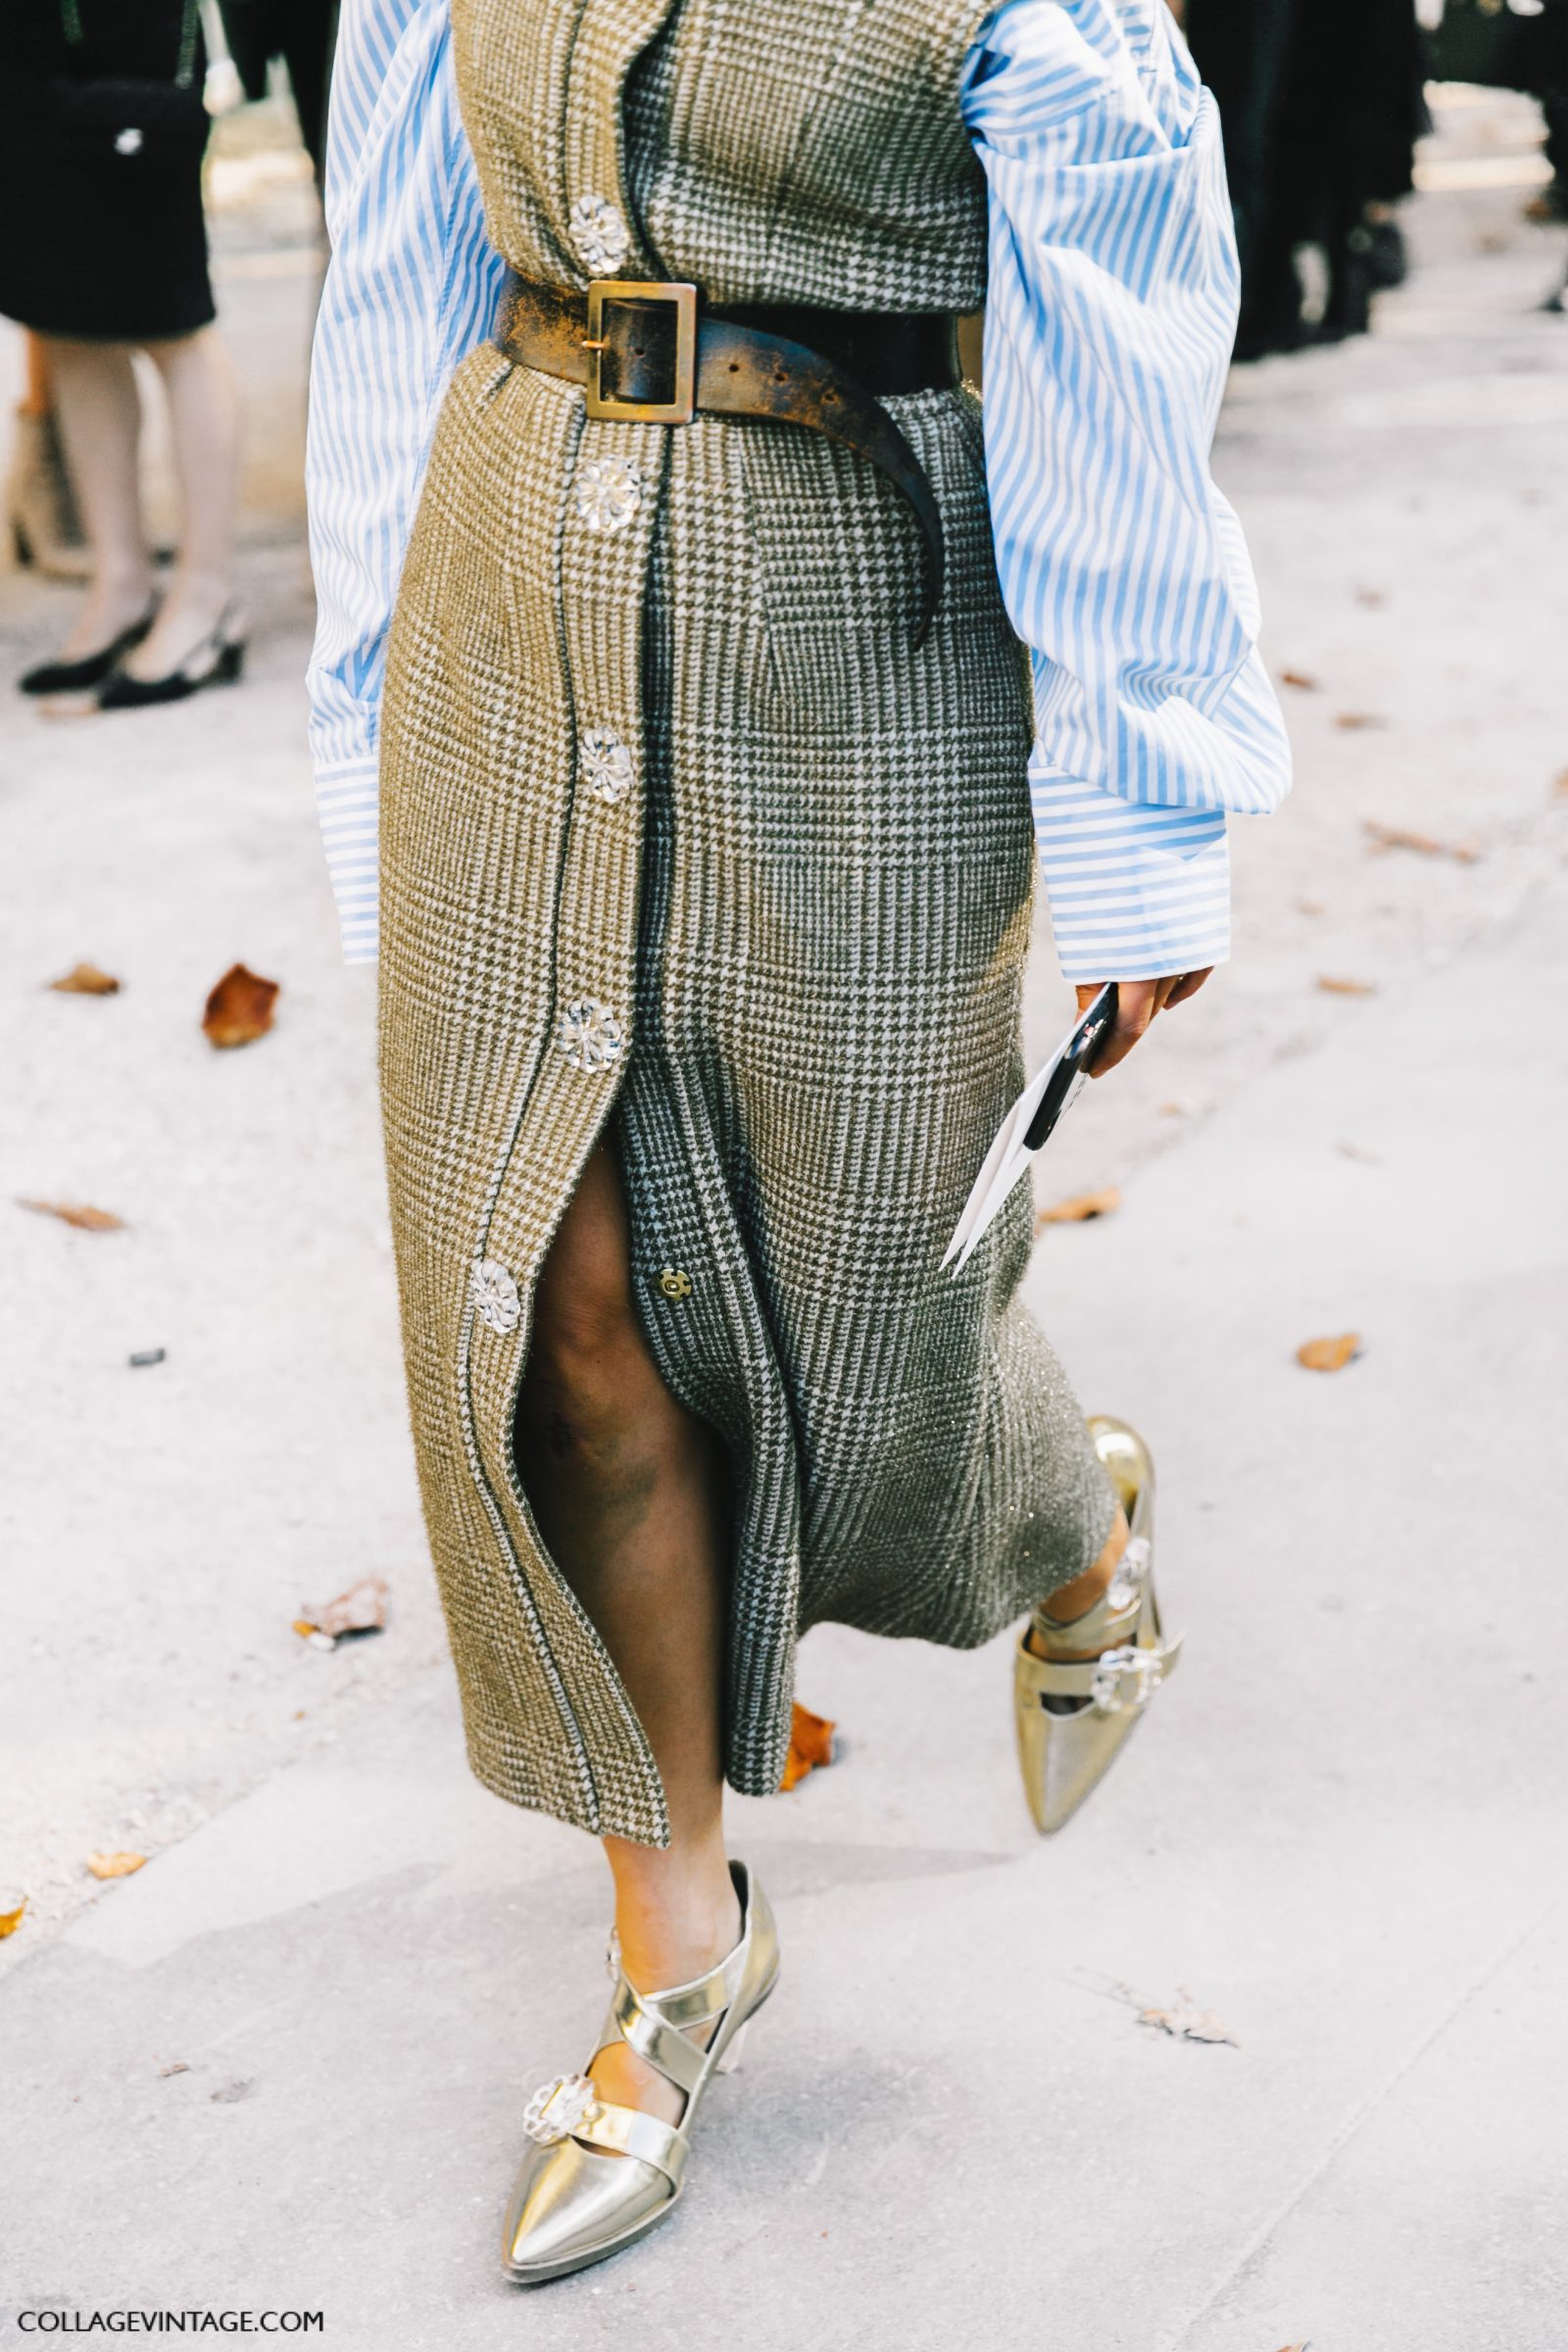 pfw-paris_fashion_week_ss17-street_style-outfits-collage_vintage-chanel-ellery-12